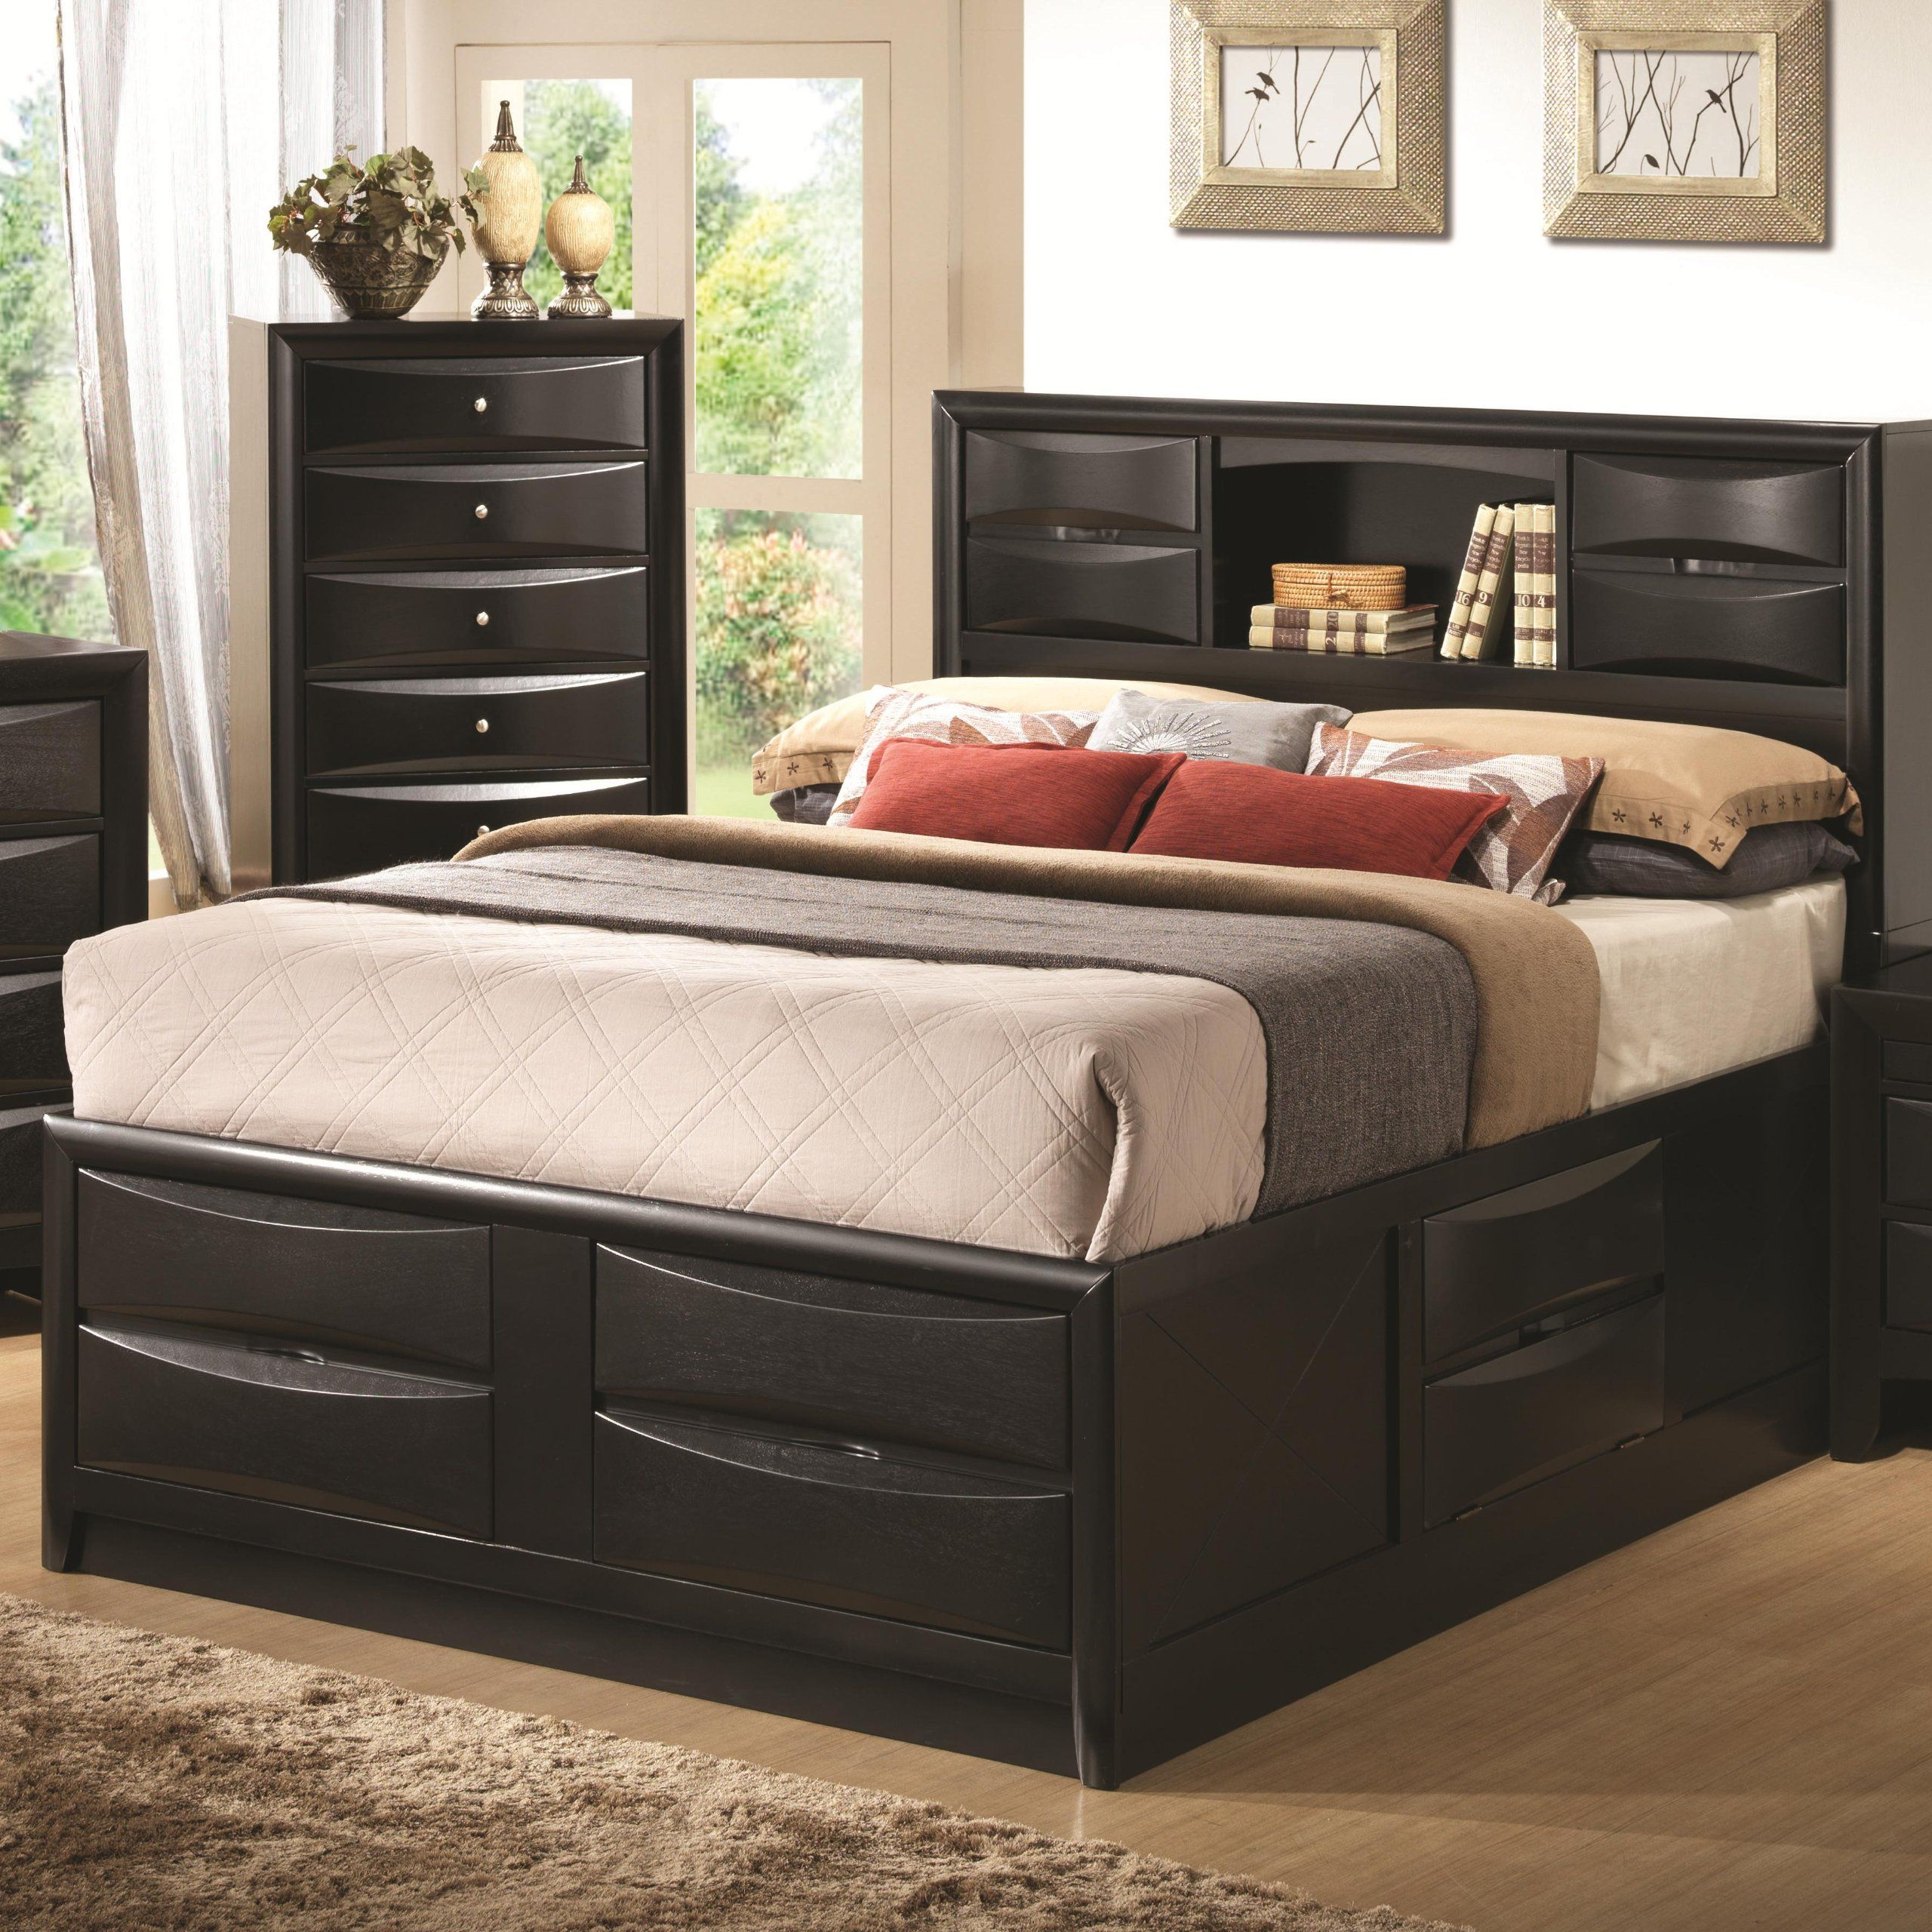 Robot Check Bed Frame With Drawers Bed Frame With Storage Bed